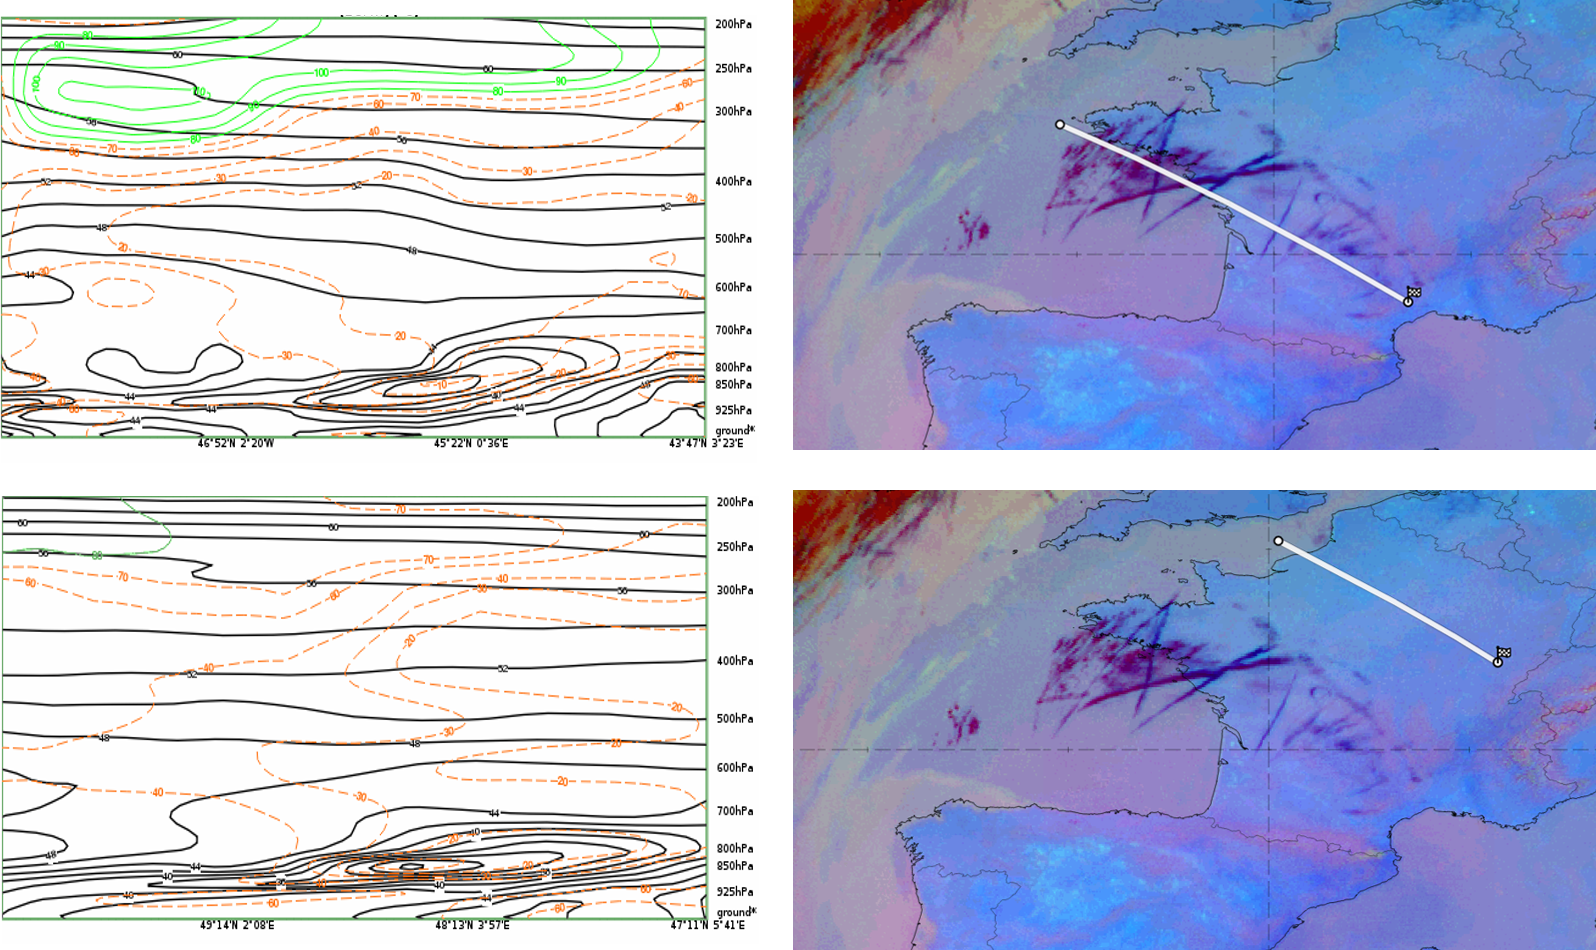 Comparison of the vertical cross-sections of relative humidity